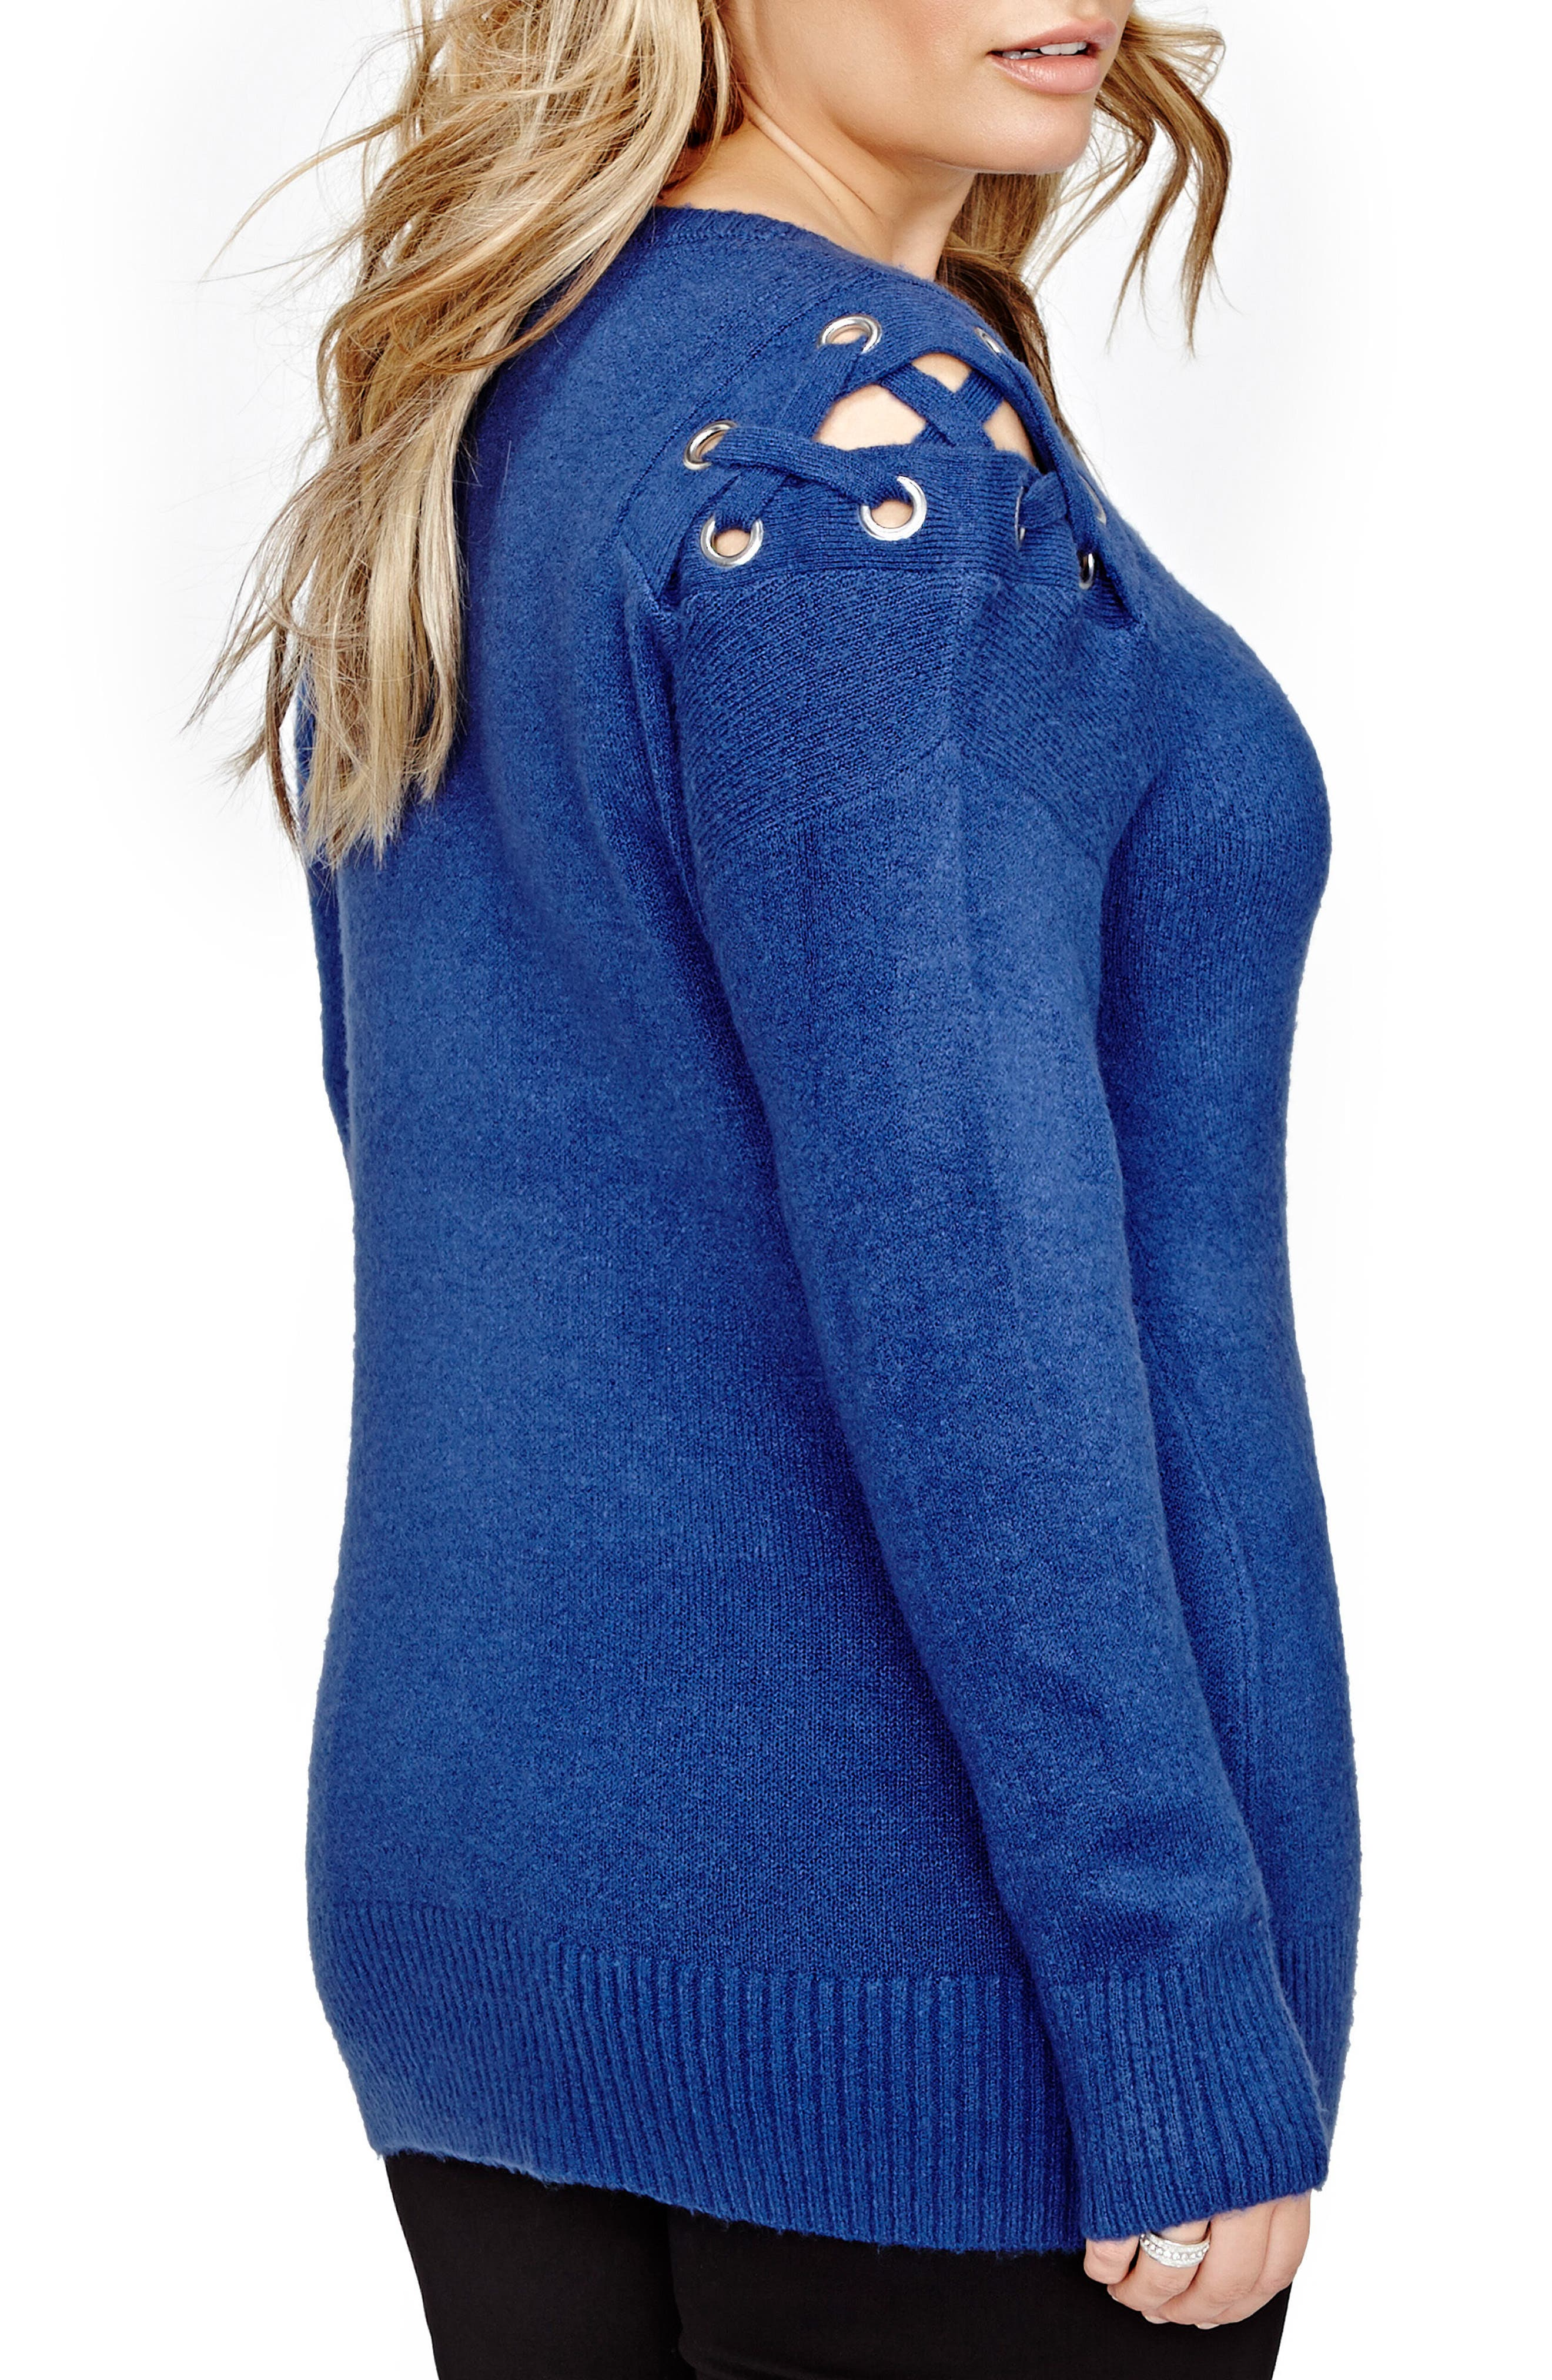 Lace-Up Sweater,                             Alternate thumbnail 2, color,                             423